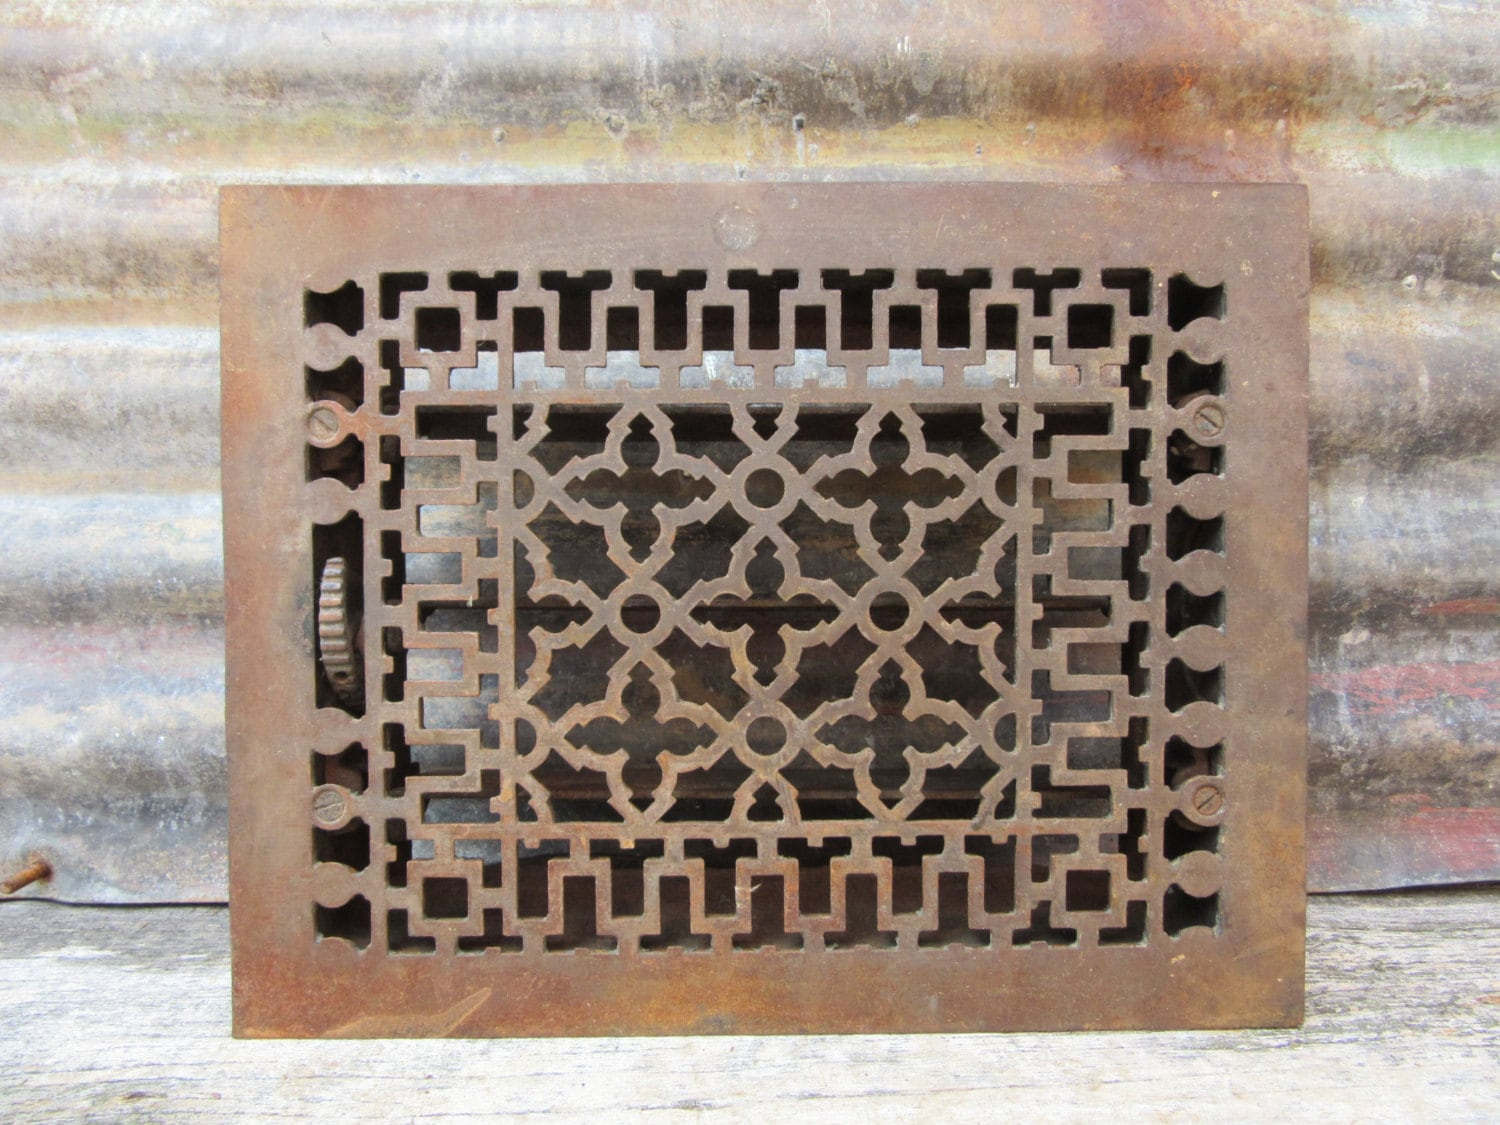 #8D623E Antique Metal Heating Duct Cover Register Plate Ornate Iron Best 3573 Heating Duct Covers photos with 1500x1125 px on helpvideos.info - Air Conditioners, Air Coolers and more